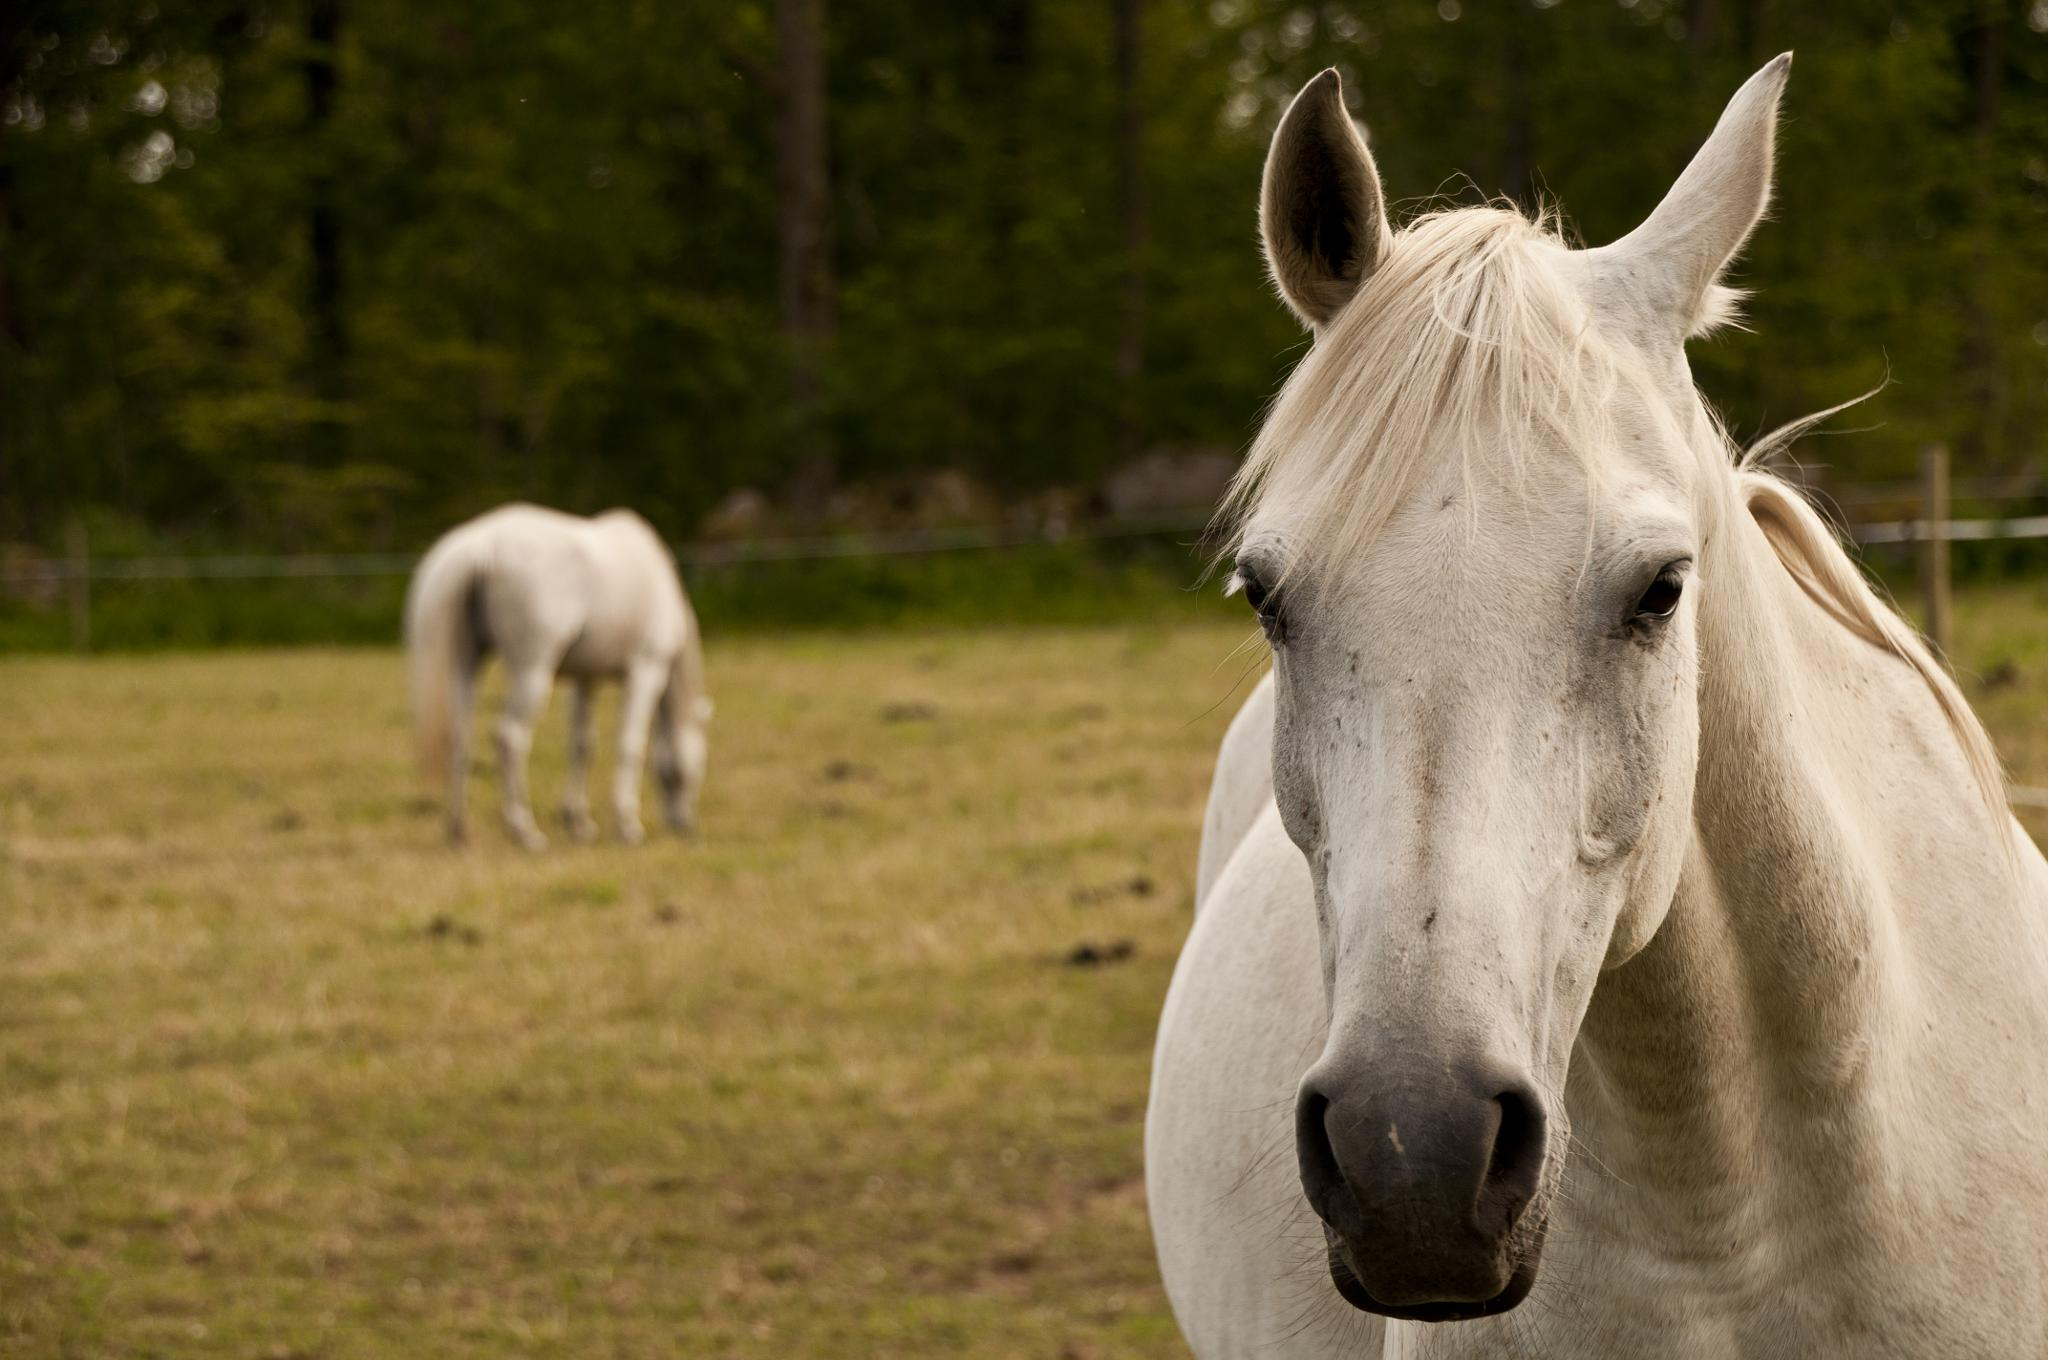 horse by gorber